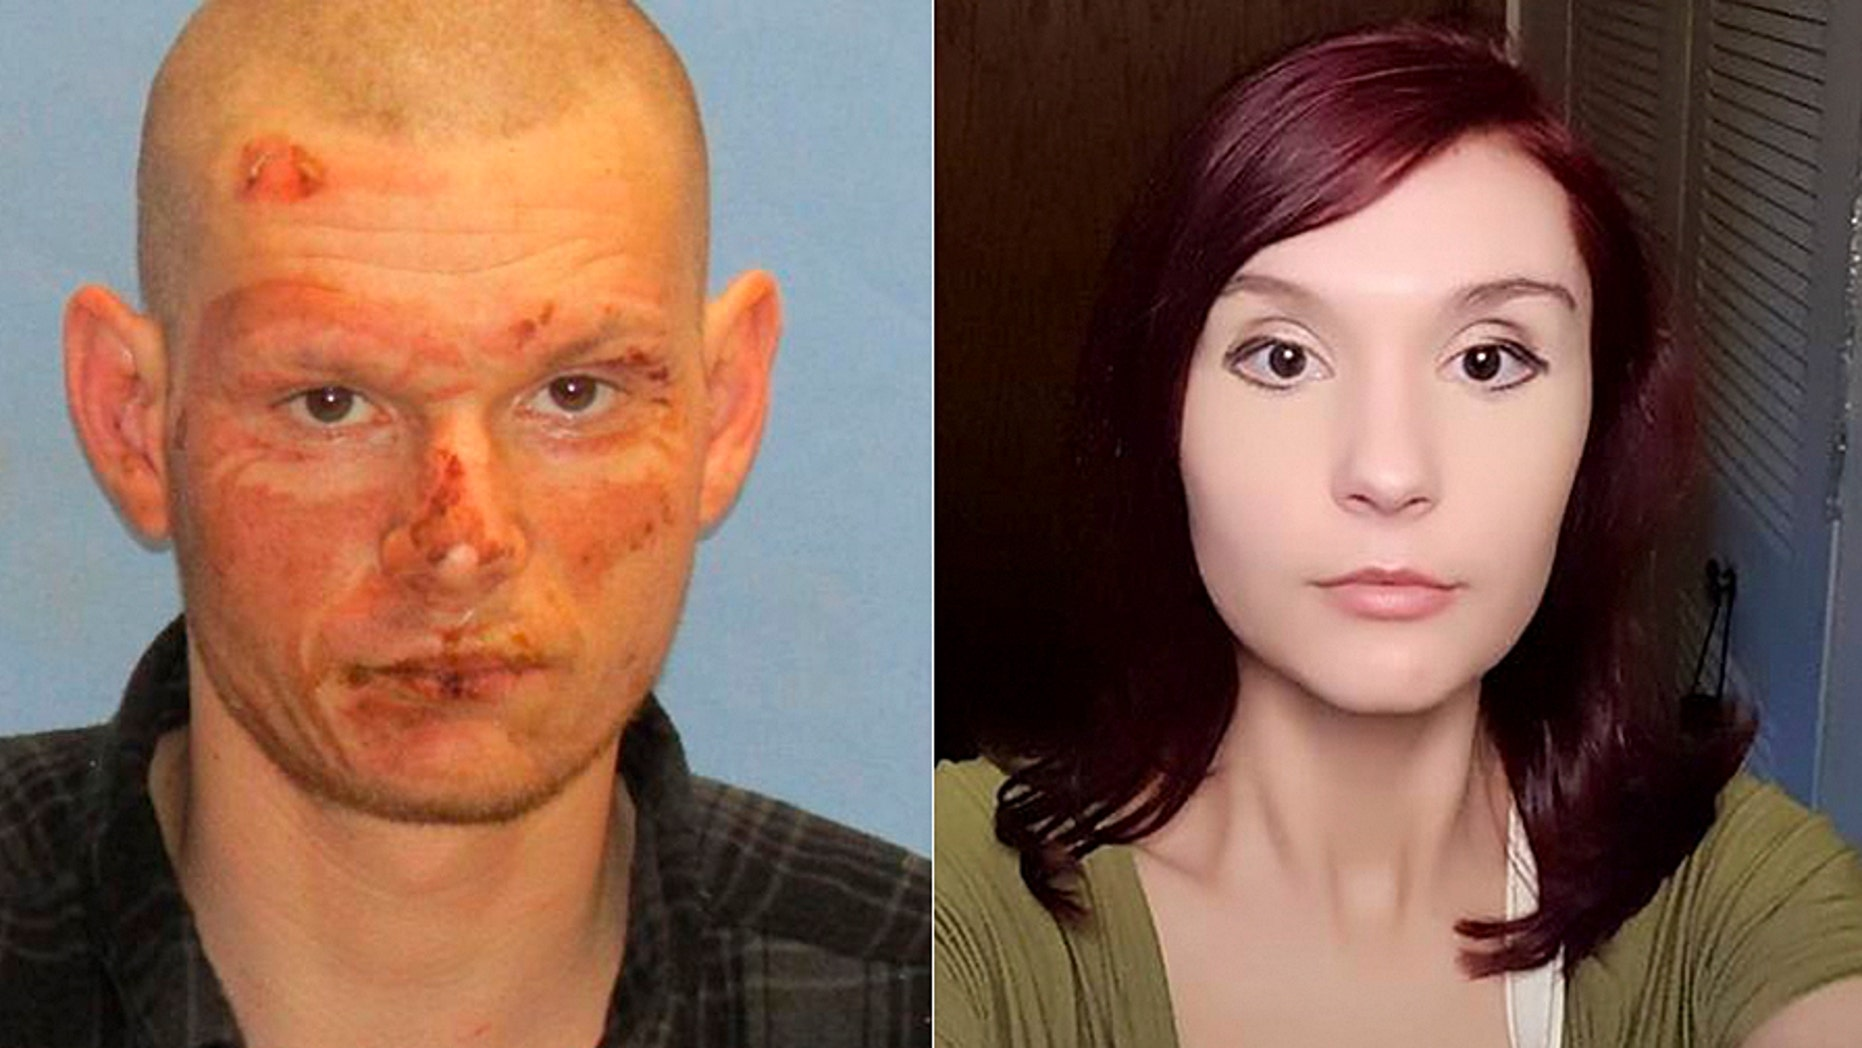 Joseph Porter, left, was arrested in Arkansas on a theft charge days after Cristina Prodan was reported missing.